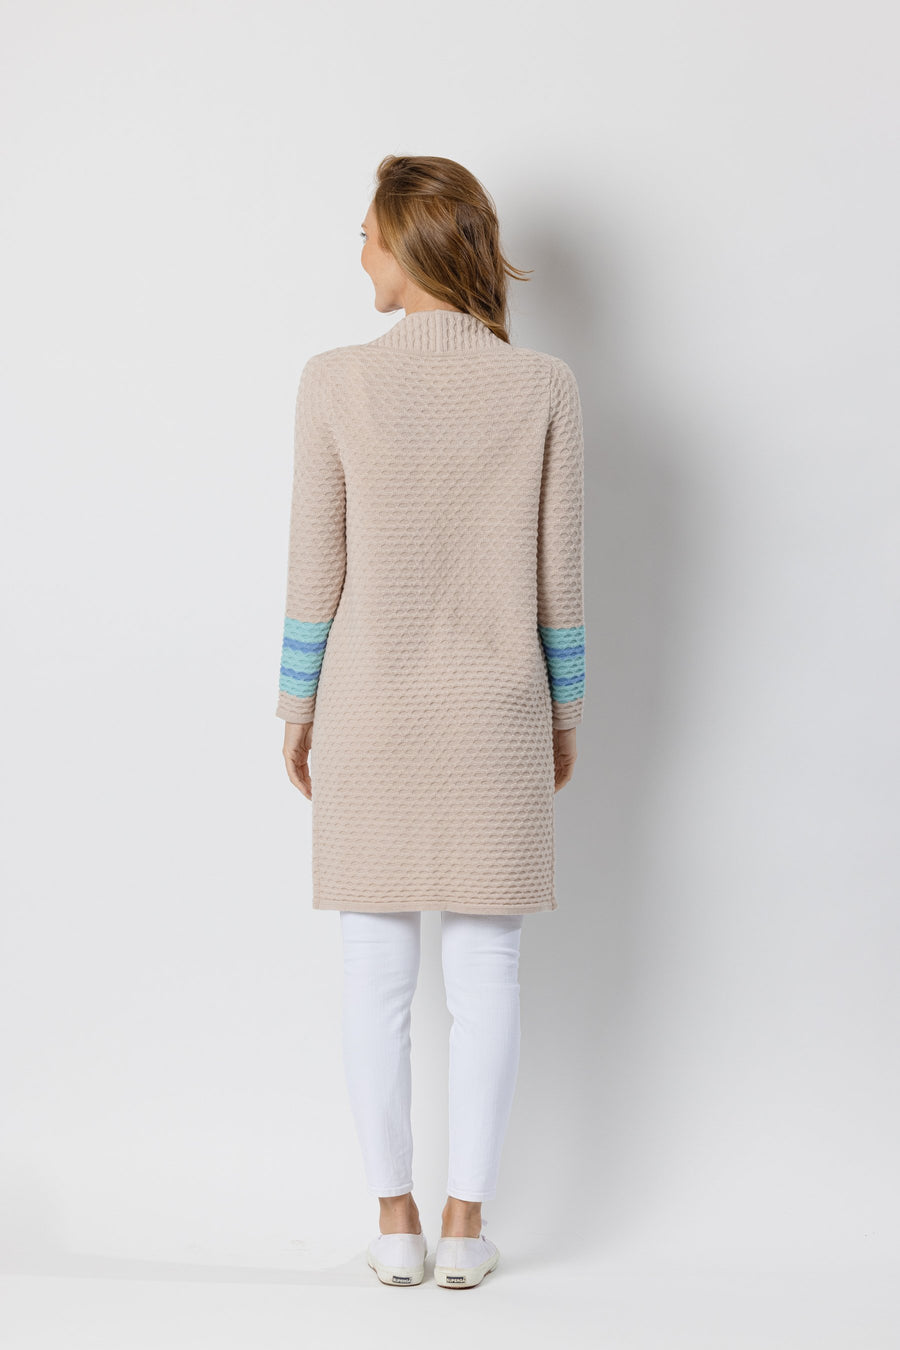 Camel Drape Front Cardigan Sweater with Stripes